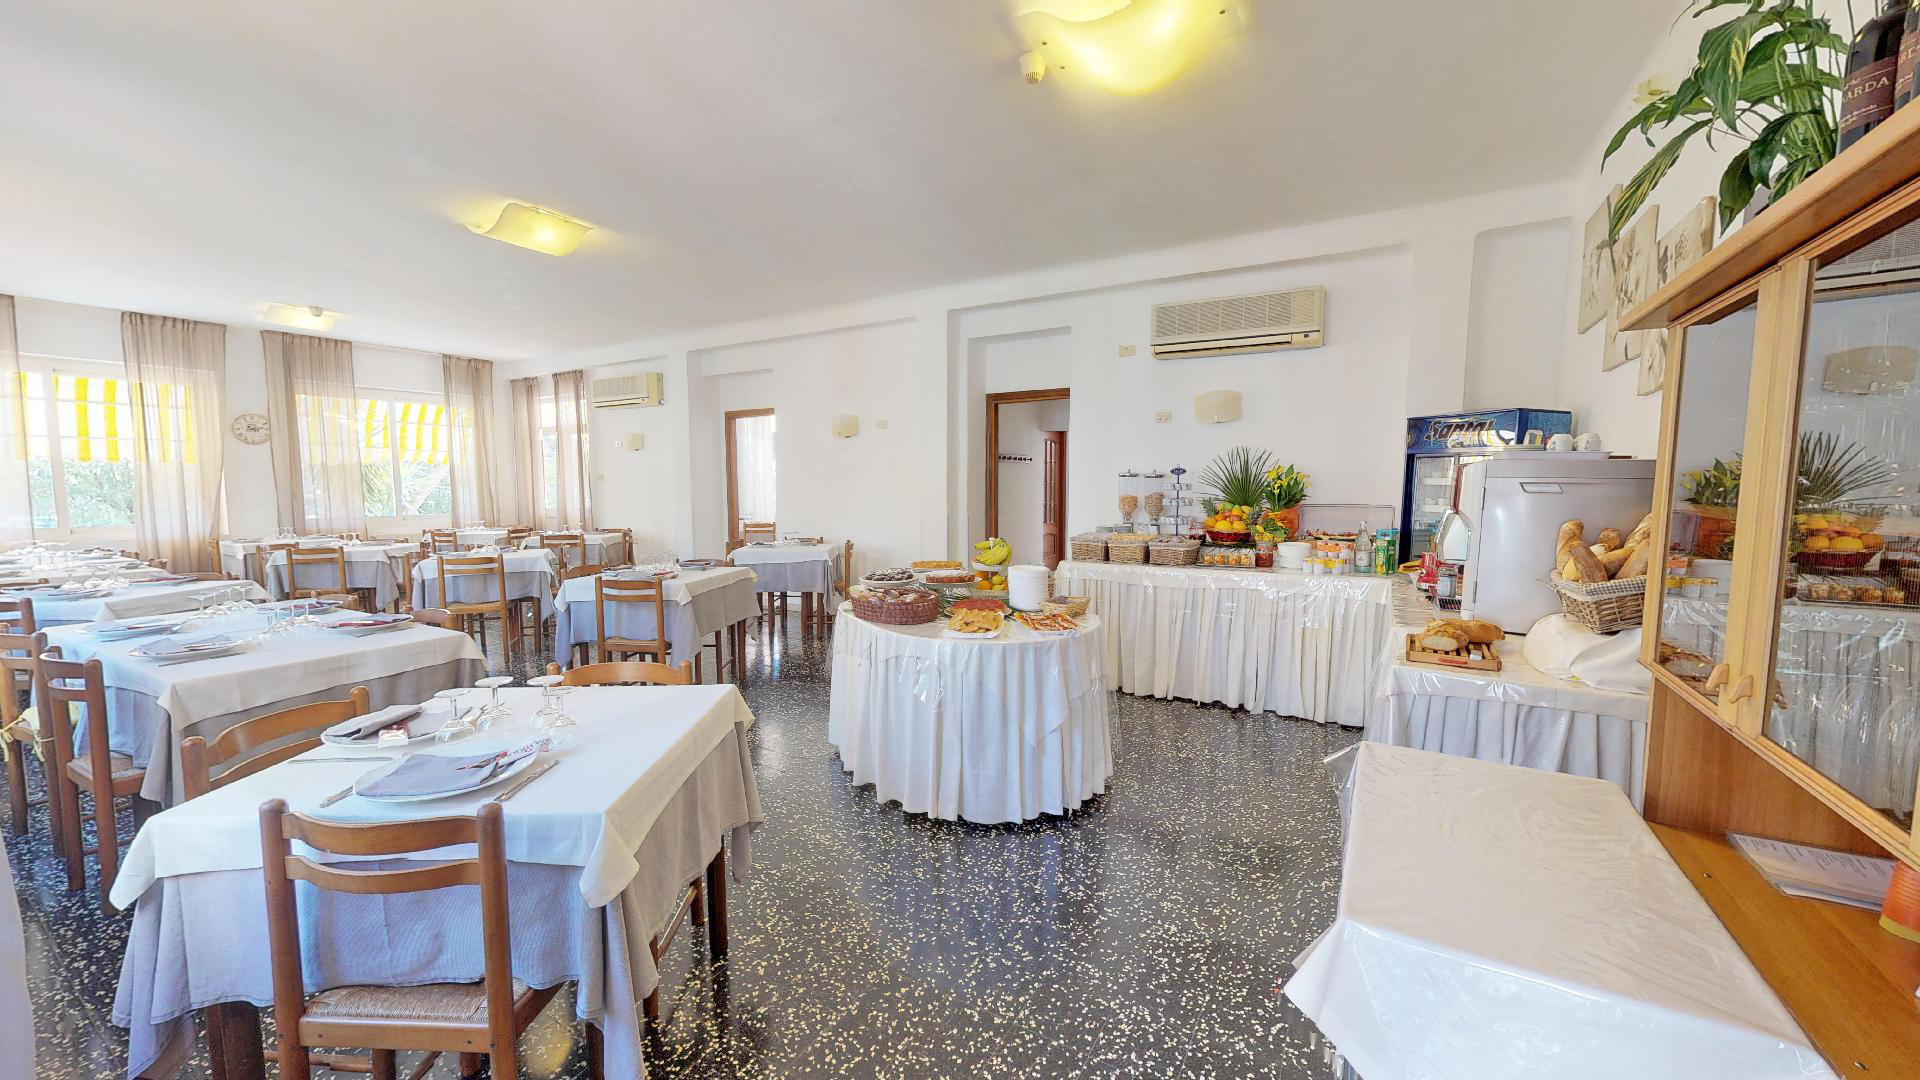 Hotel-Arcobaleno-Celle-06172019_103633